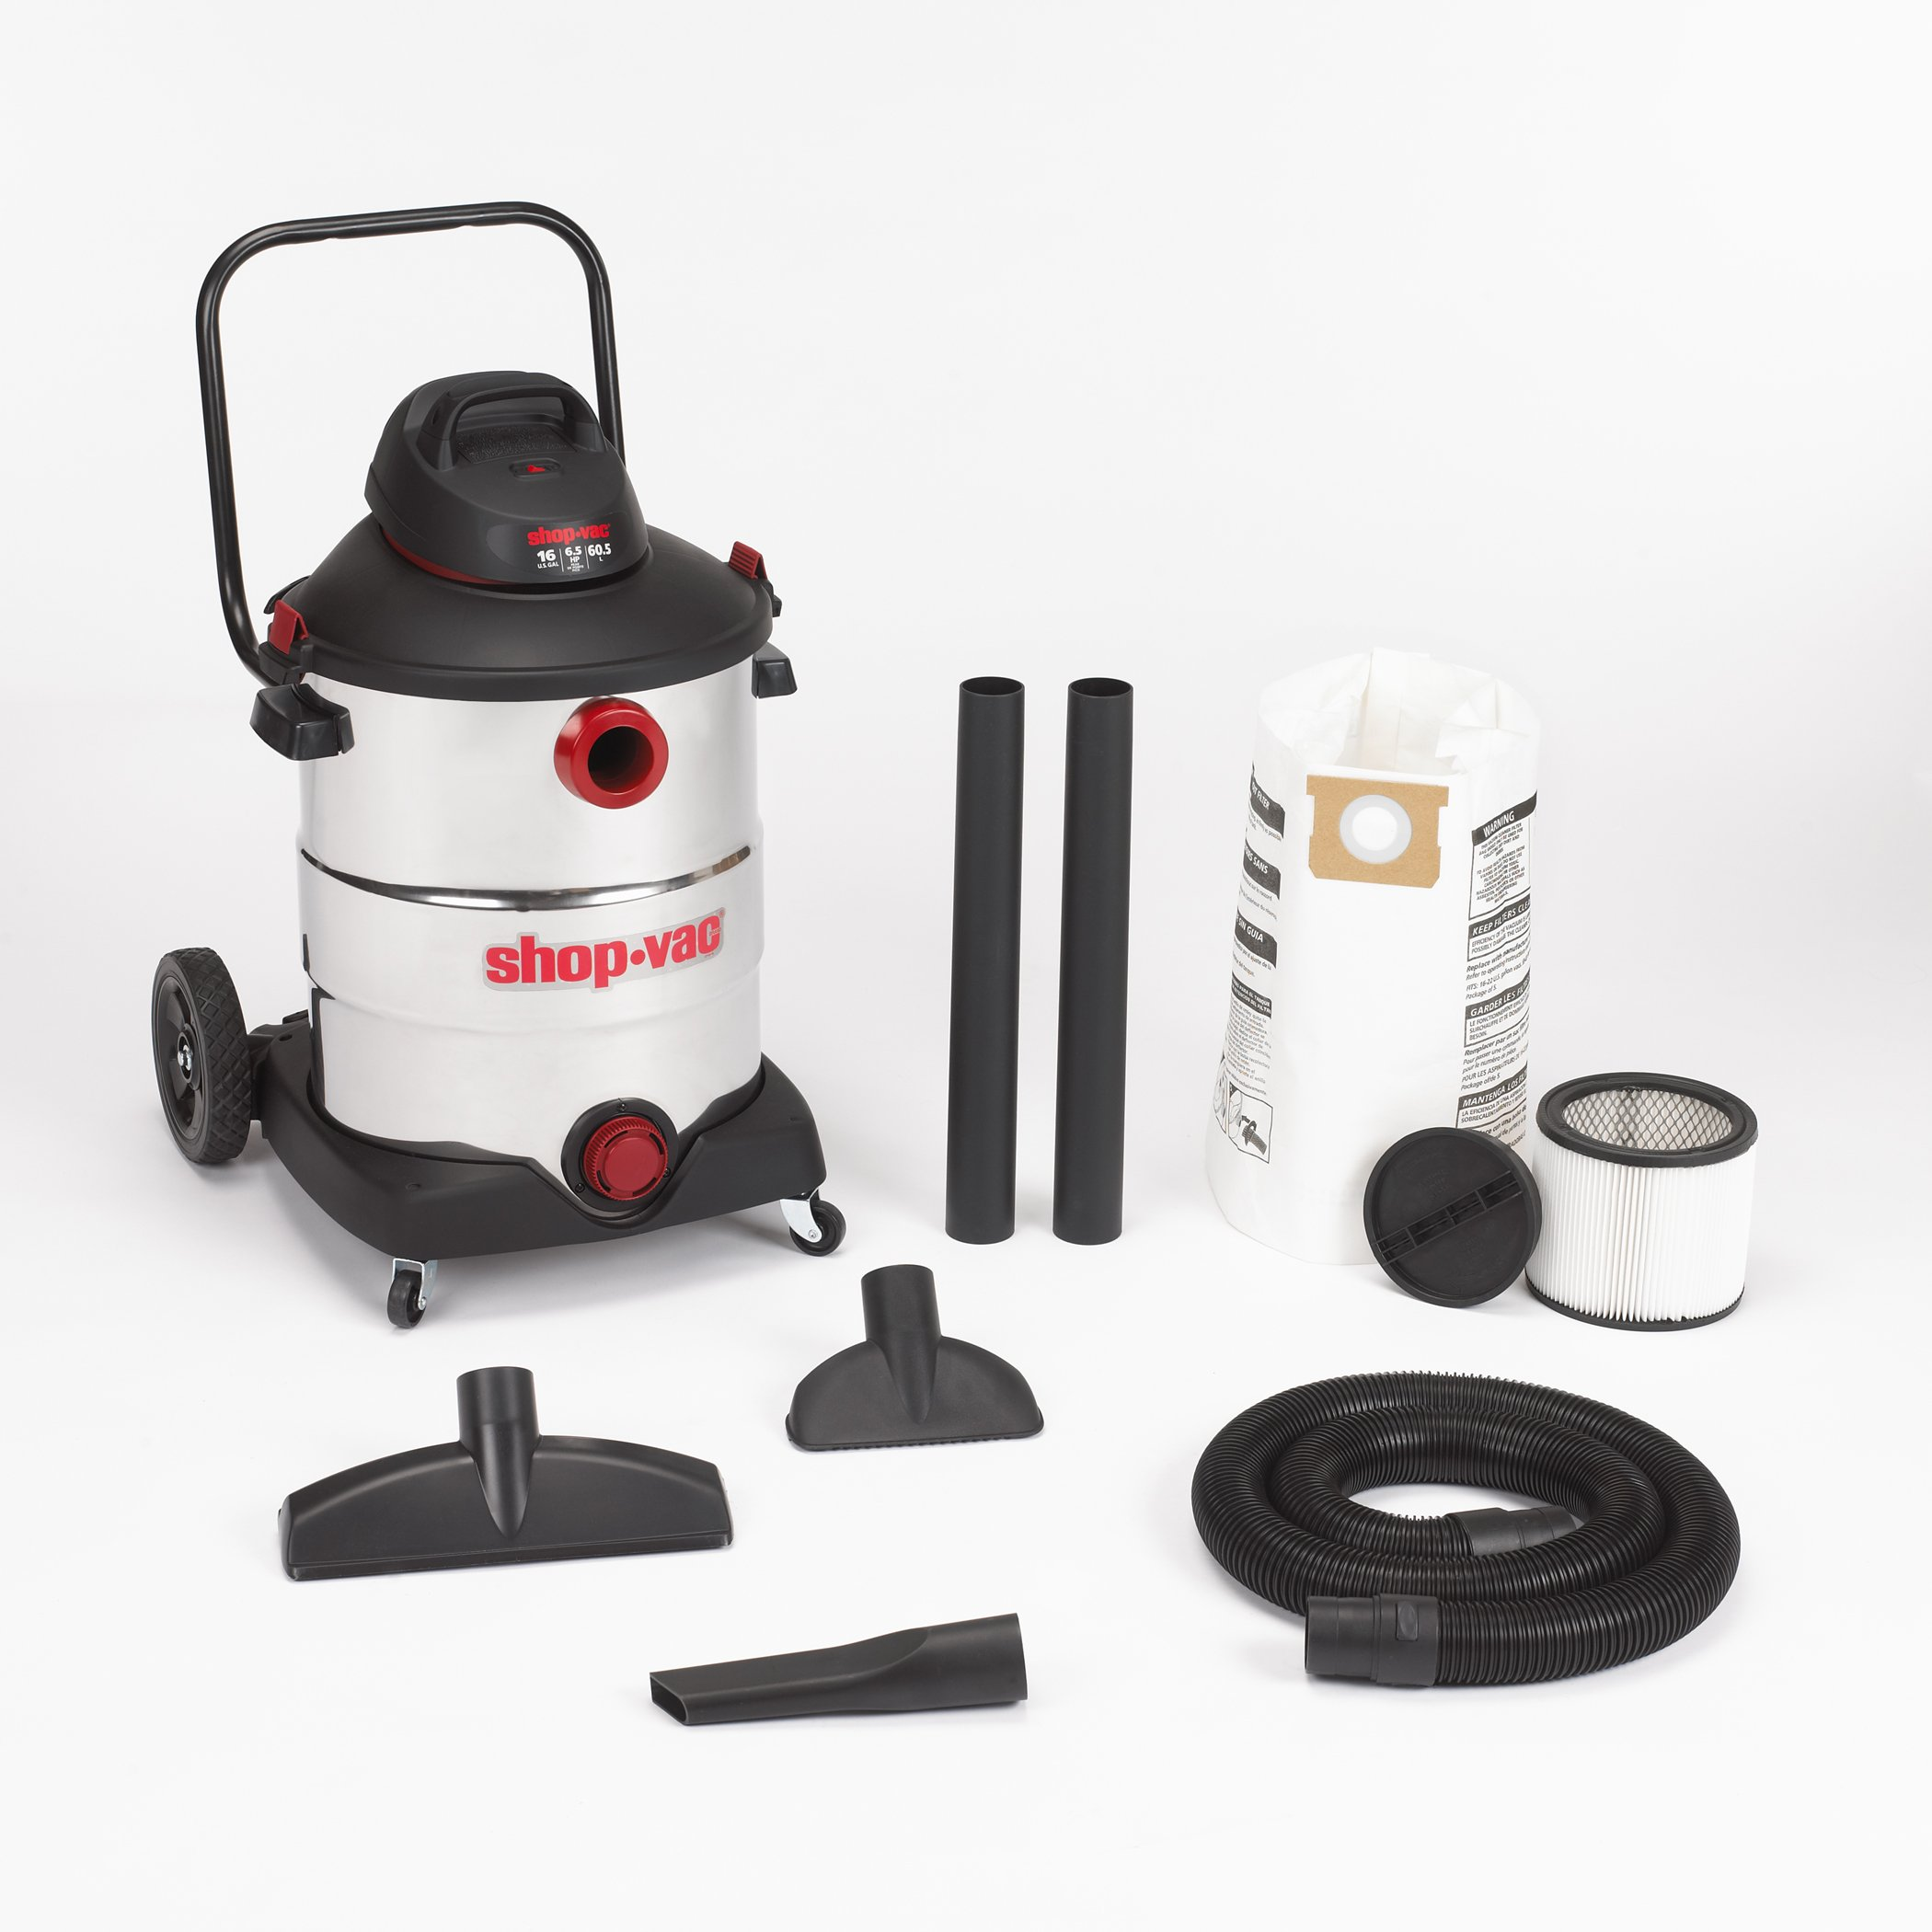 Shop-Vac 5986400 16-Gallon 6.5 Peak HP Stainless Steel Wet Dry Vacuum by Shop-Vac